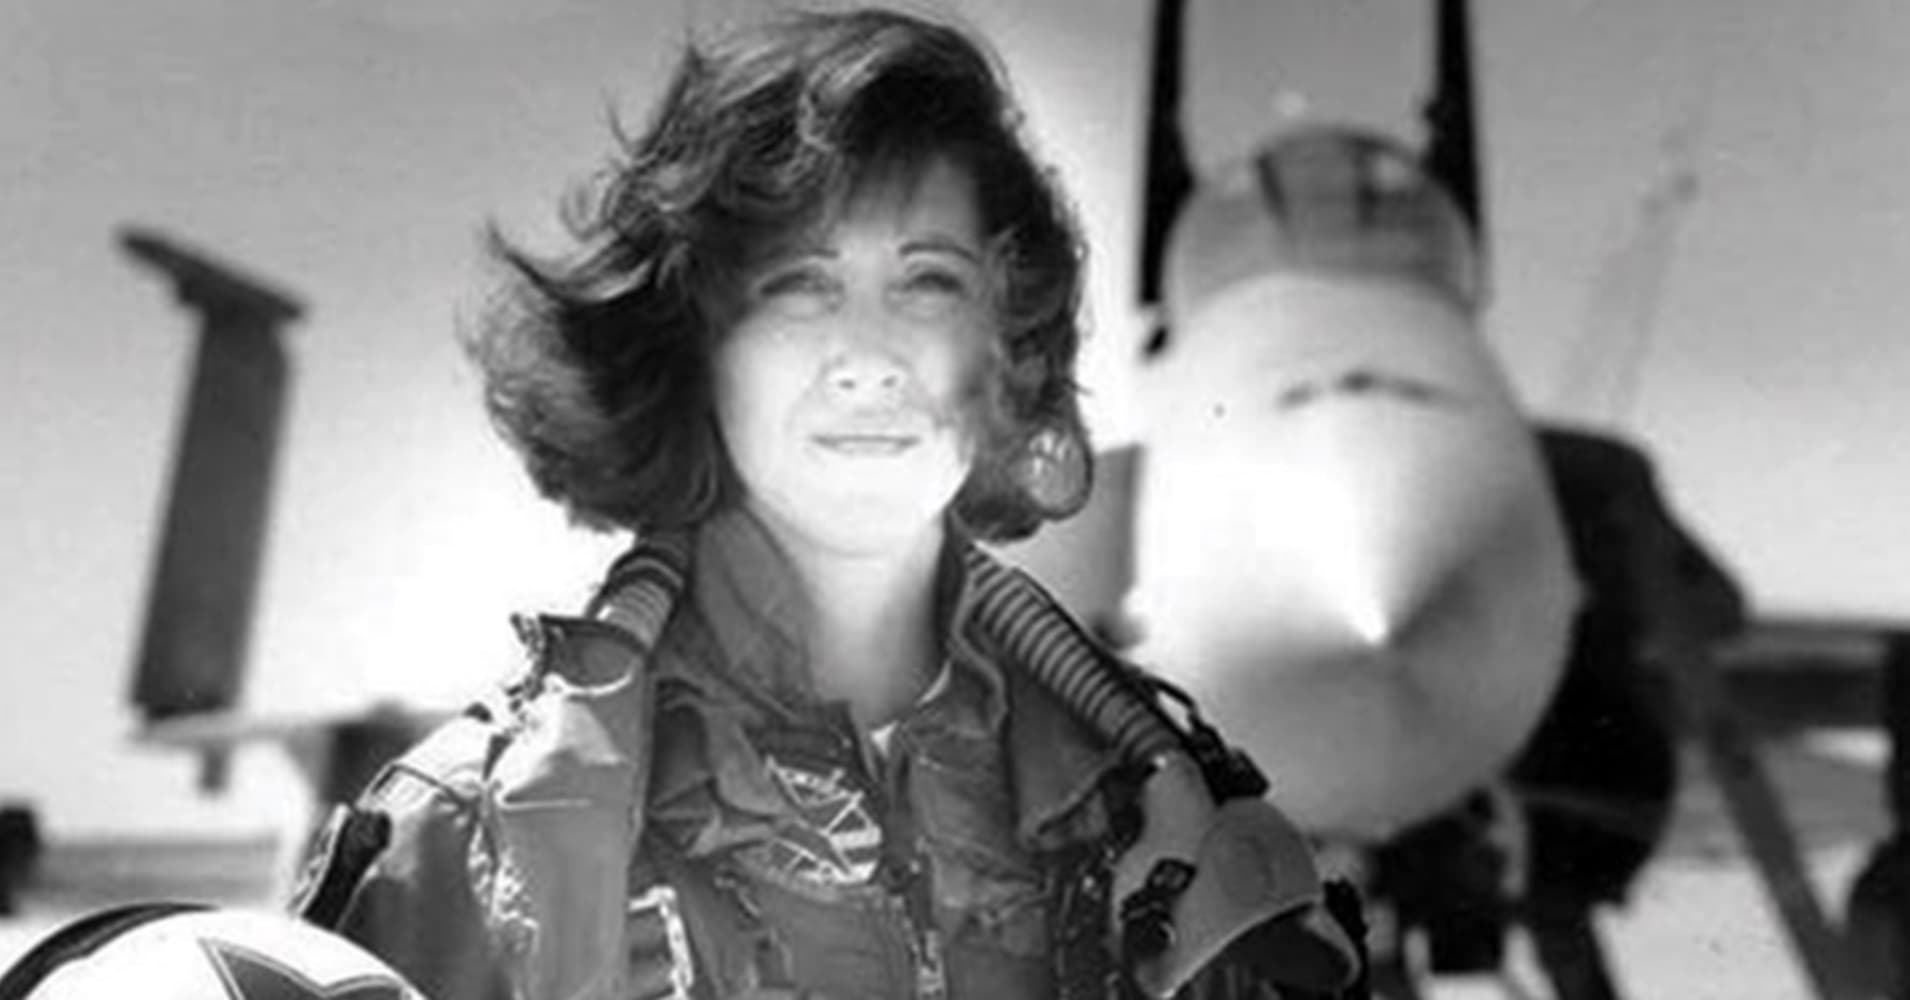 Tammie Jo Shults in a photo from the 1990s.